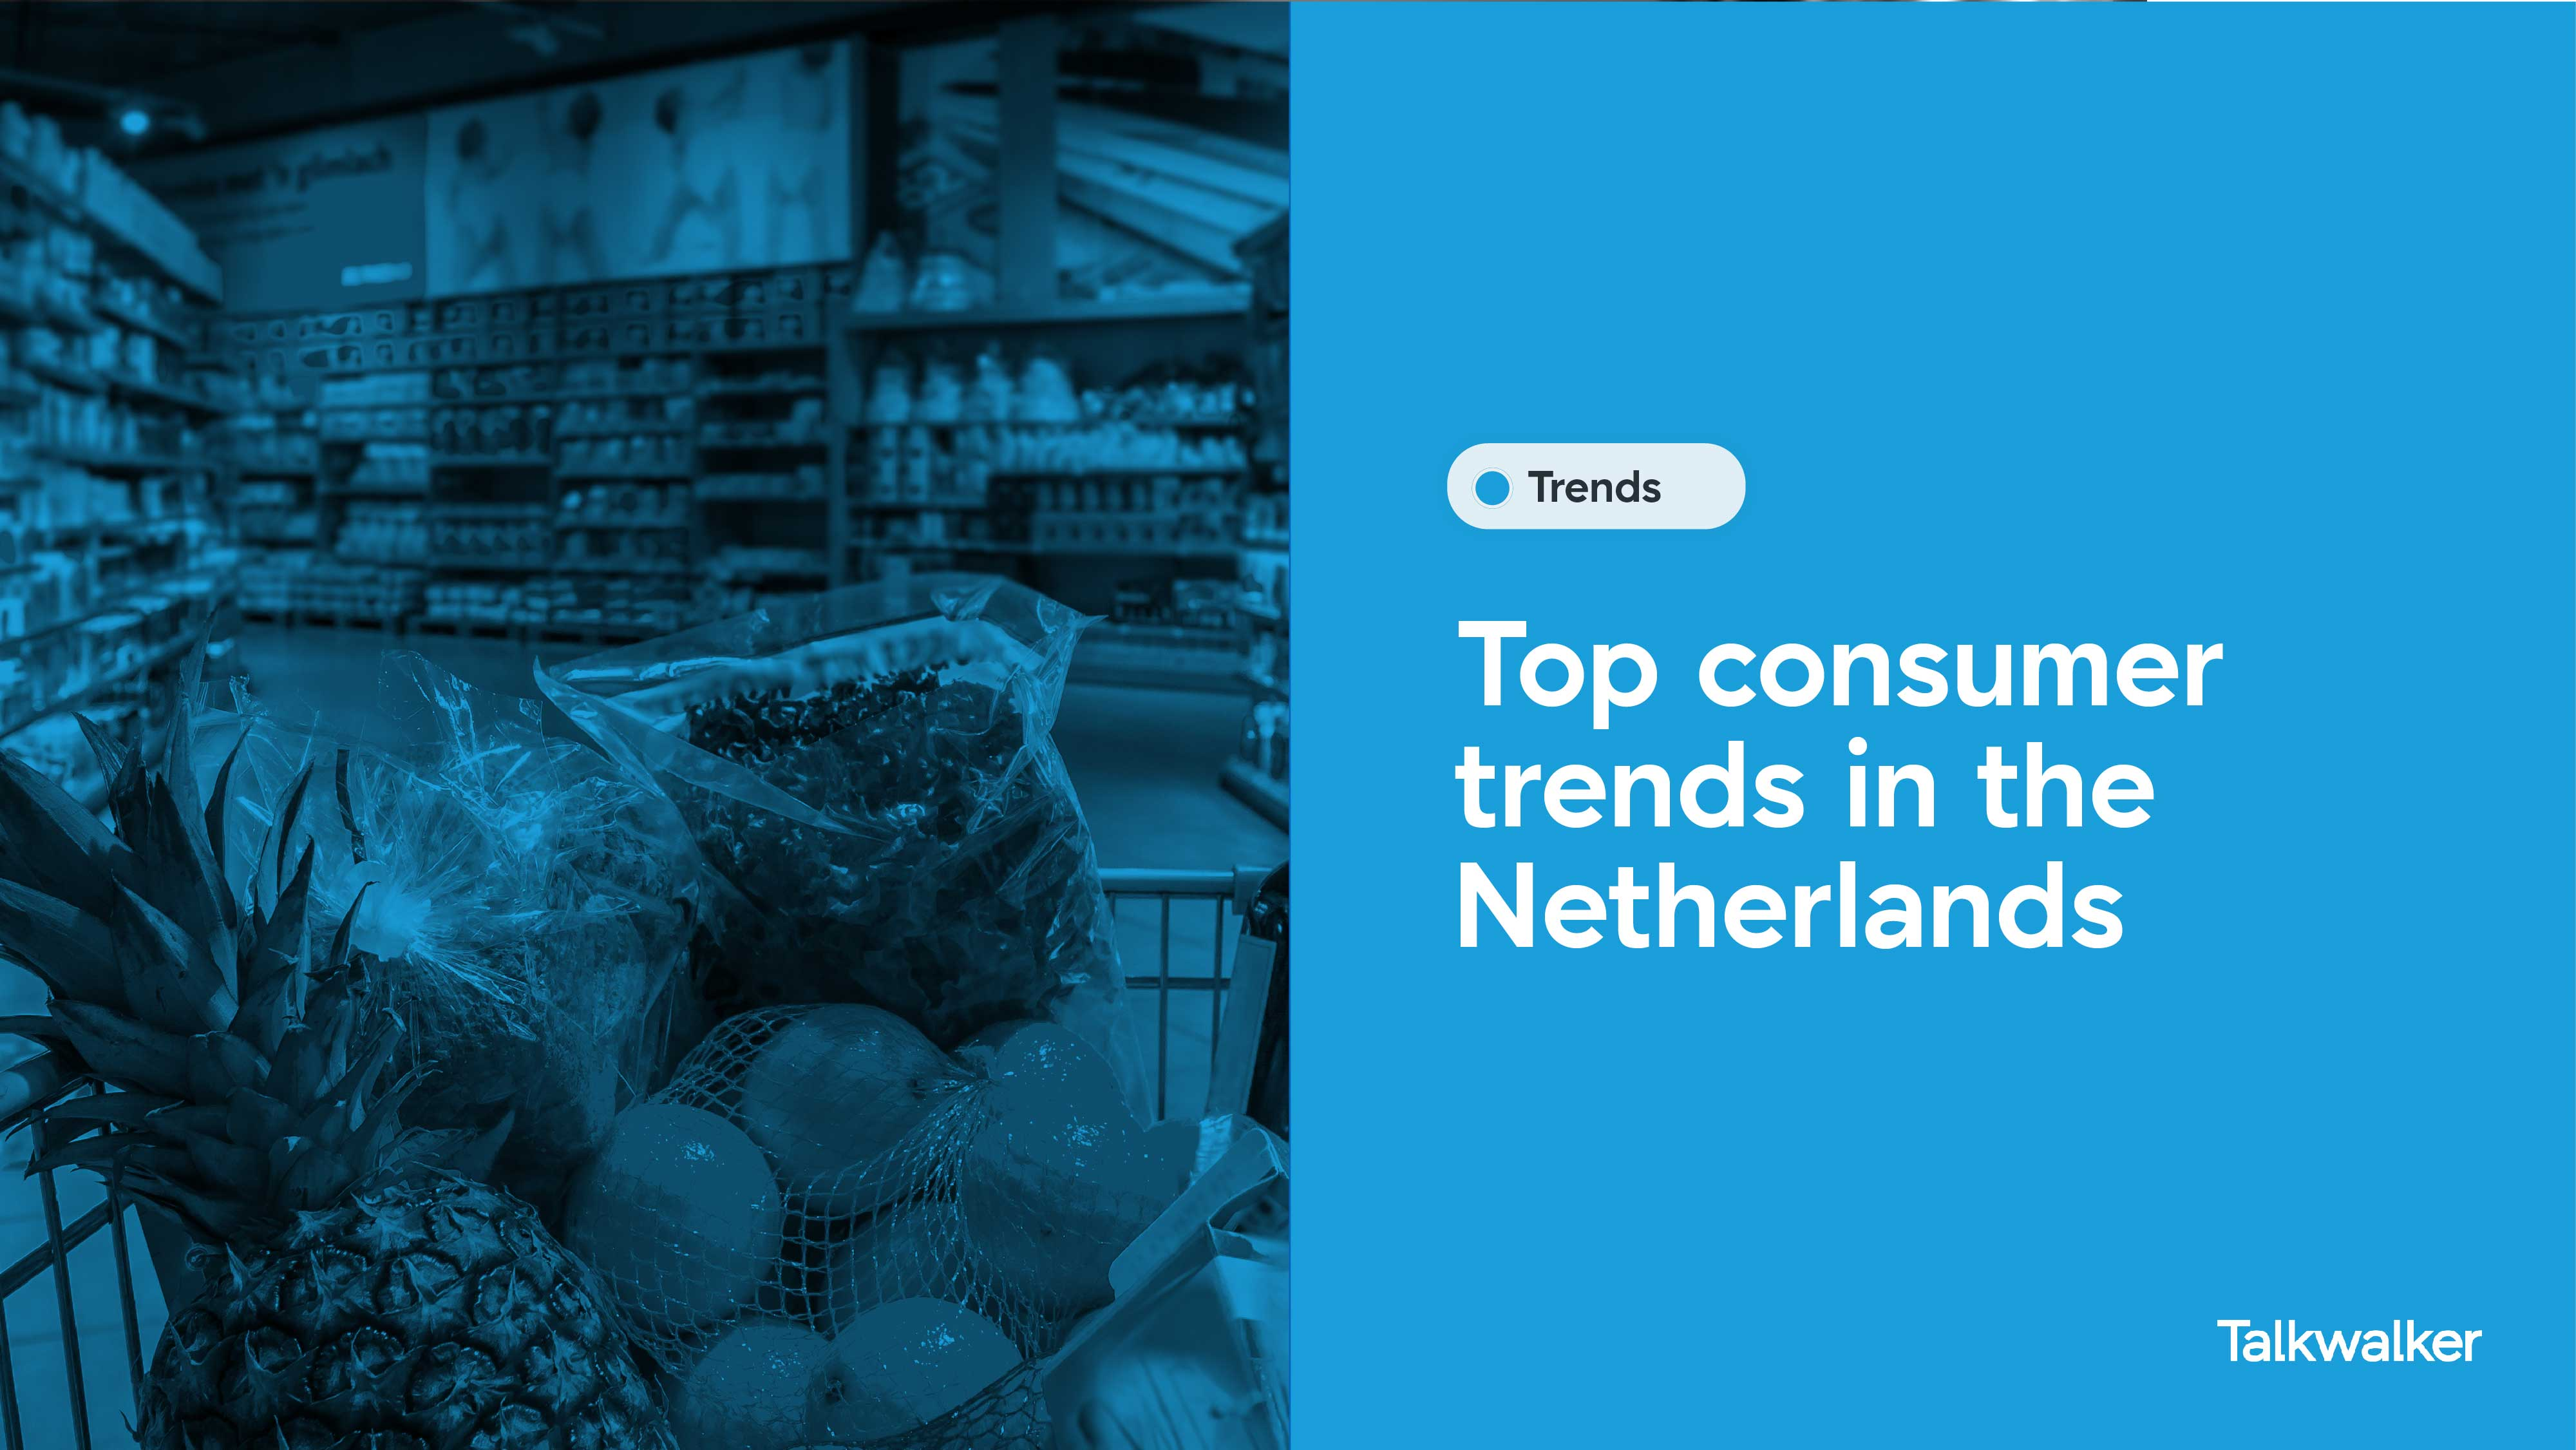 Adapting to shifting consumer trends in the Netherlands requires access to real-time conversational data